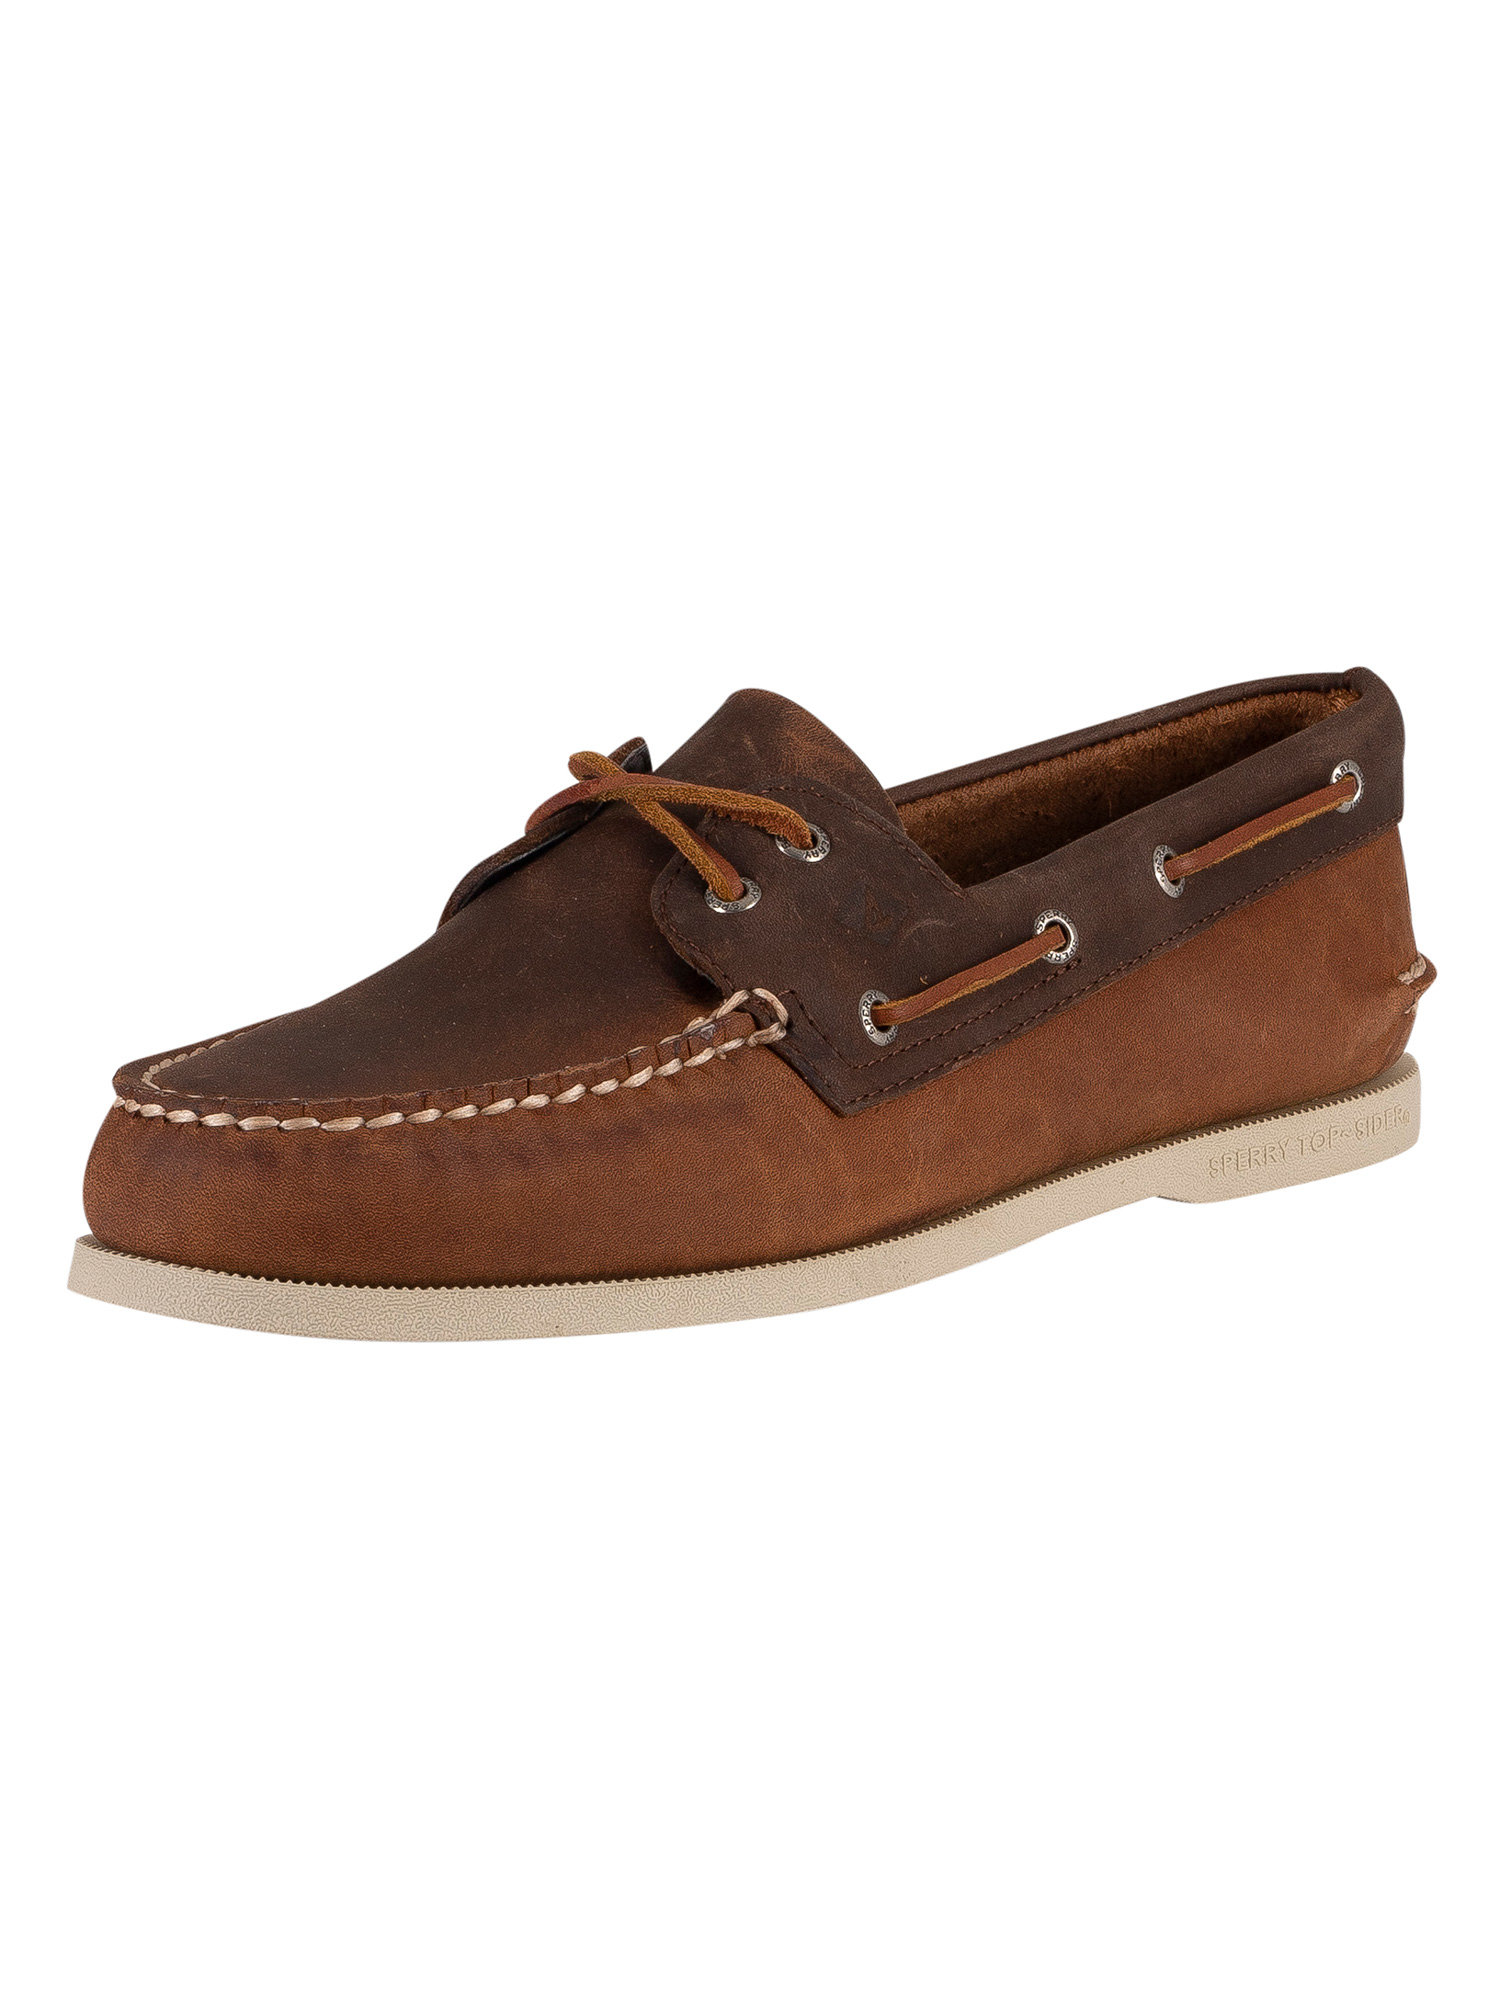 Sperry Top-Sider 2-Eye Boat Shoes